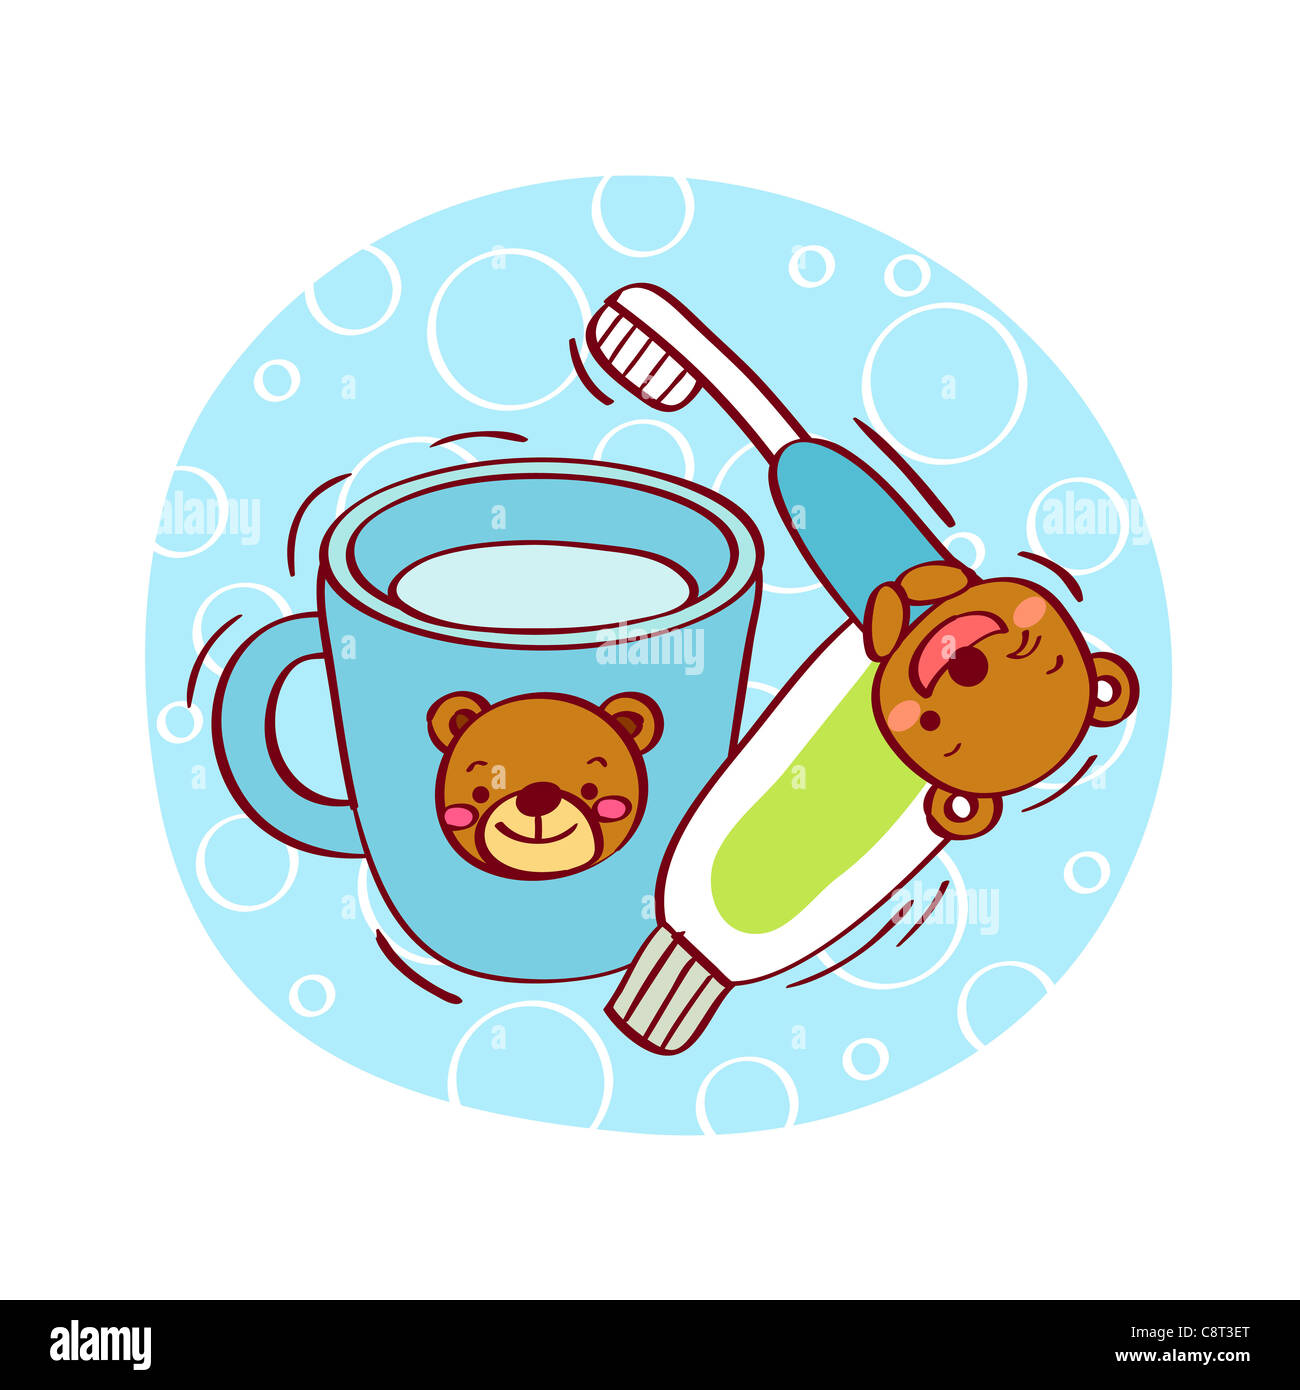 Illustration of toothbrush and toothpaste with water mug - Stock Image